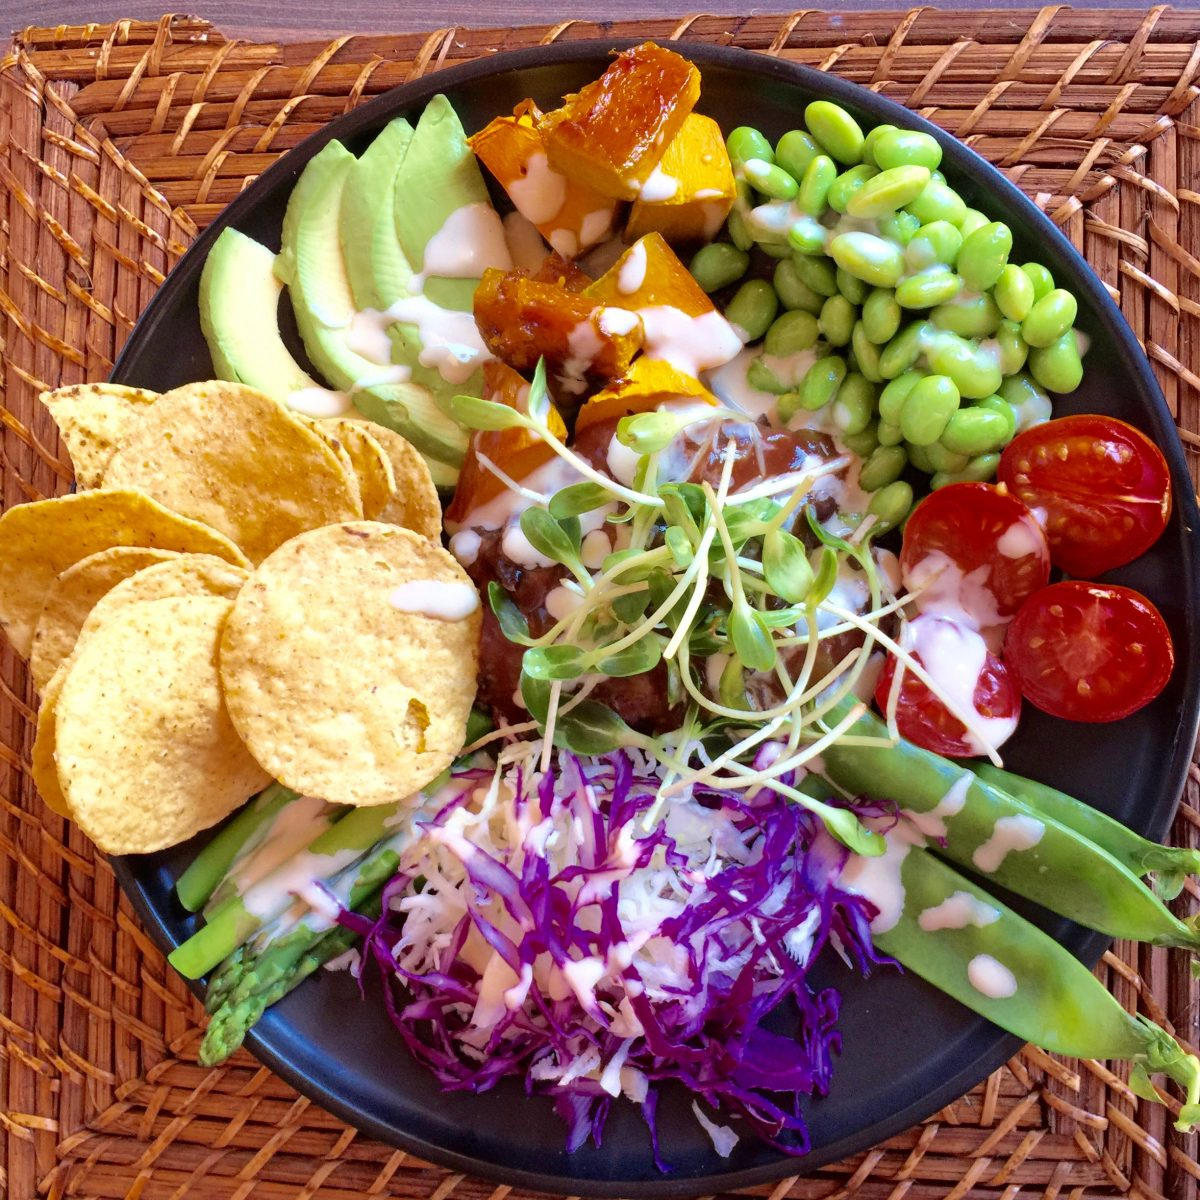 Healthy Buddha Bowl Salad by cooing meals for one